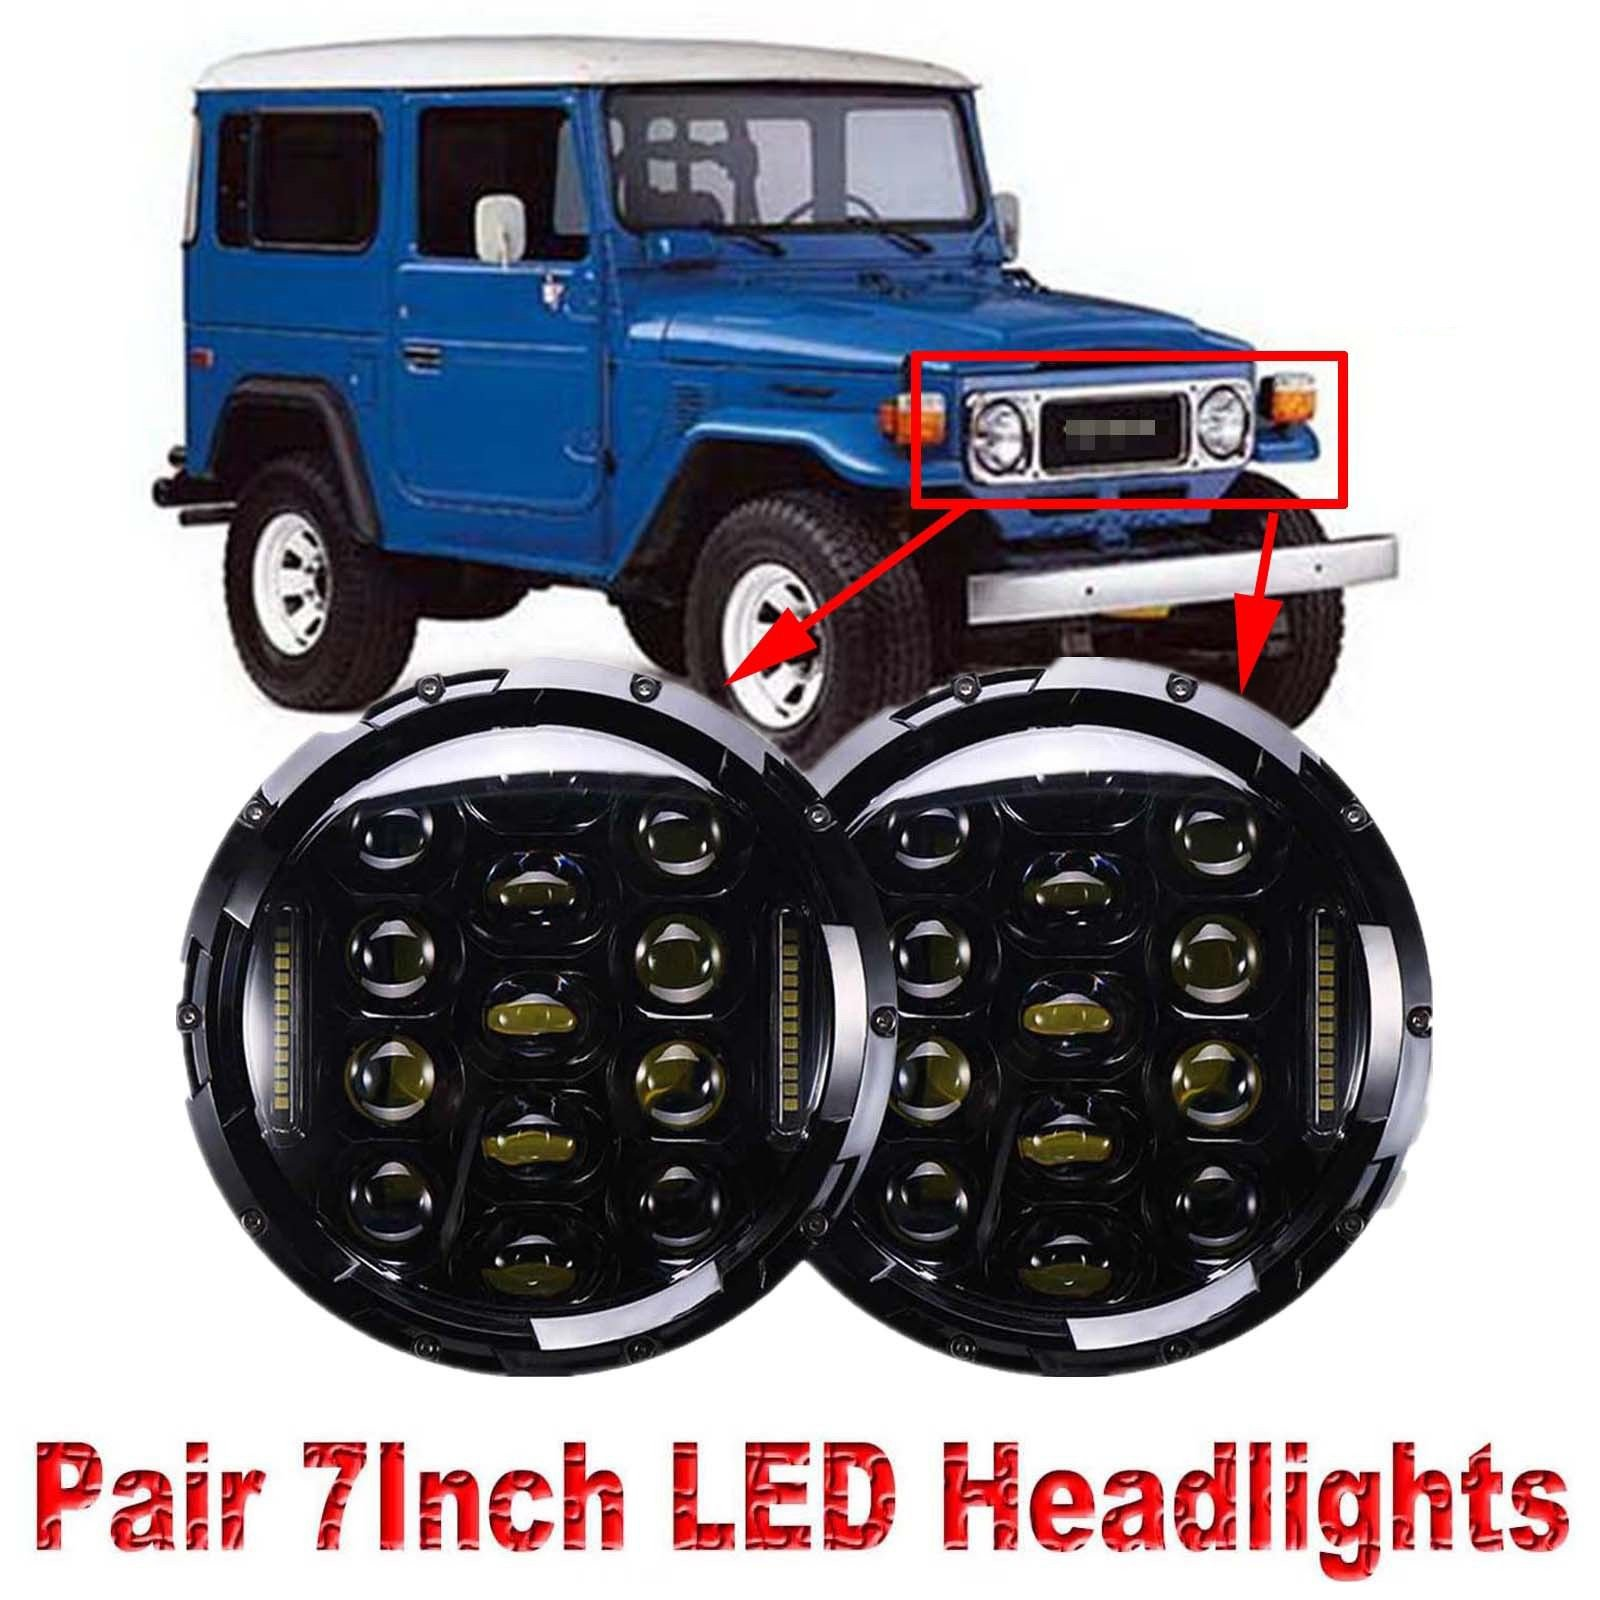 Land Cruiser Fj40 Top Deals Lowest Price 1973 Toyota 7 Inch Led Round Headlight Conversion For 150w 6000k Hi Lo